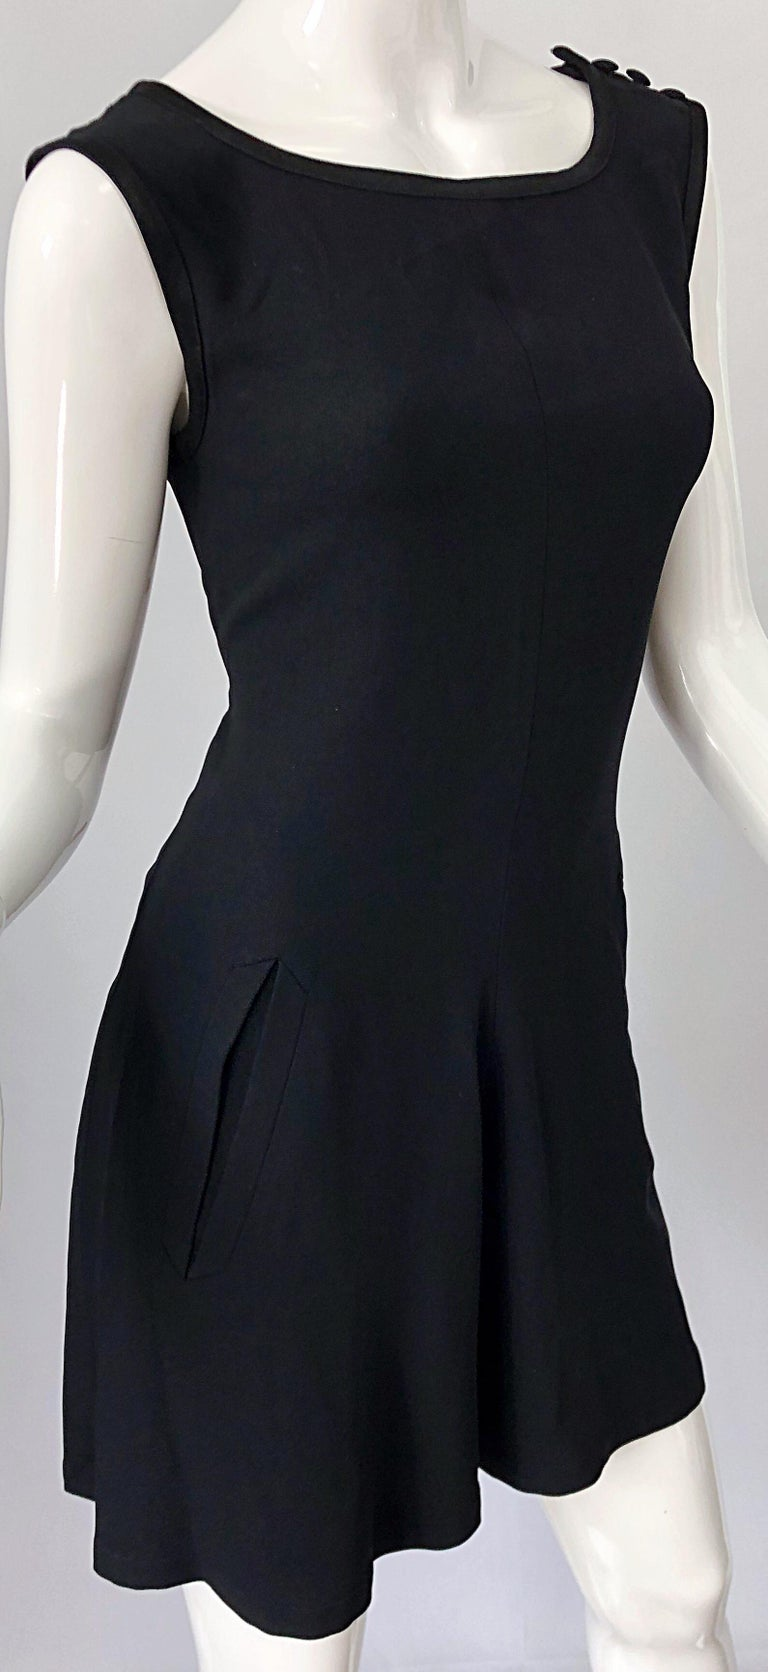 Vintage Yves Saint Laurent Romper Black Rayon Sleeveless 1990s One Piece 90s  For Sale 1